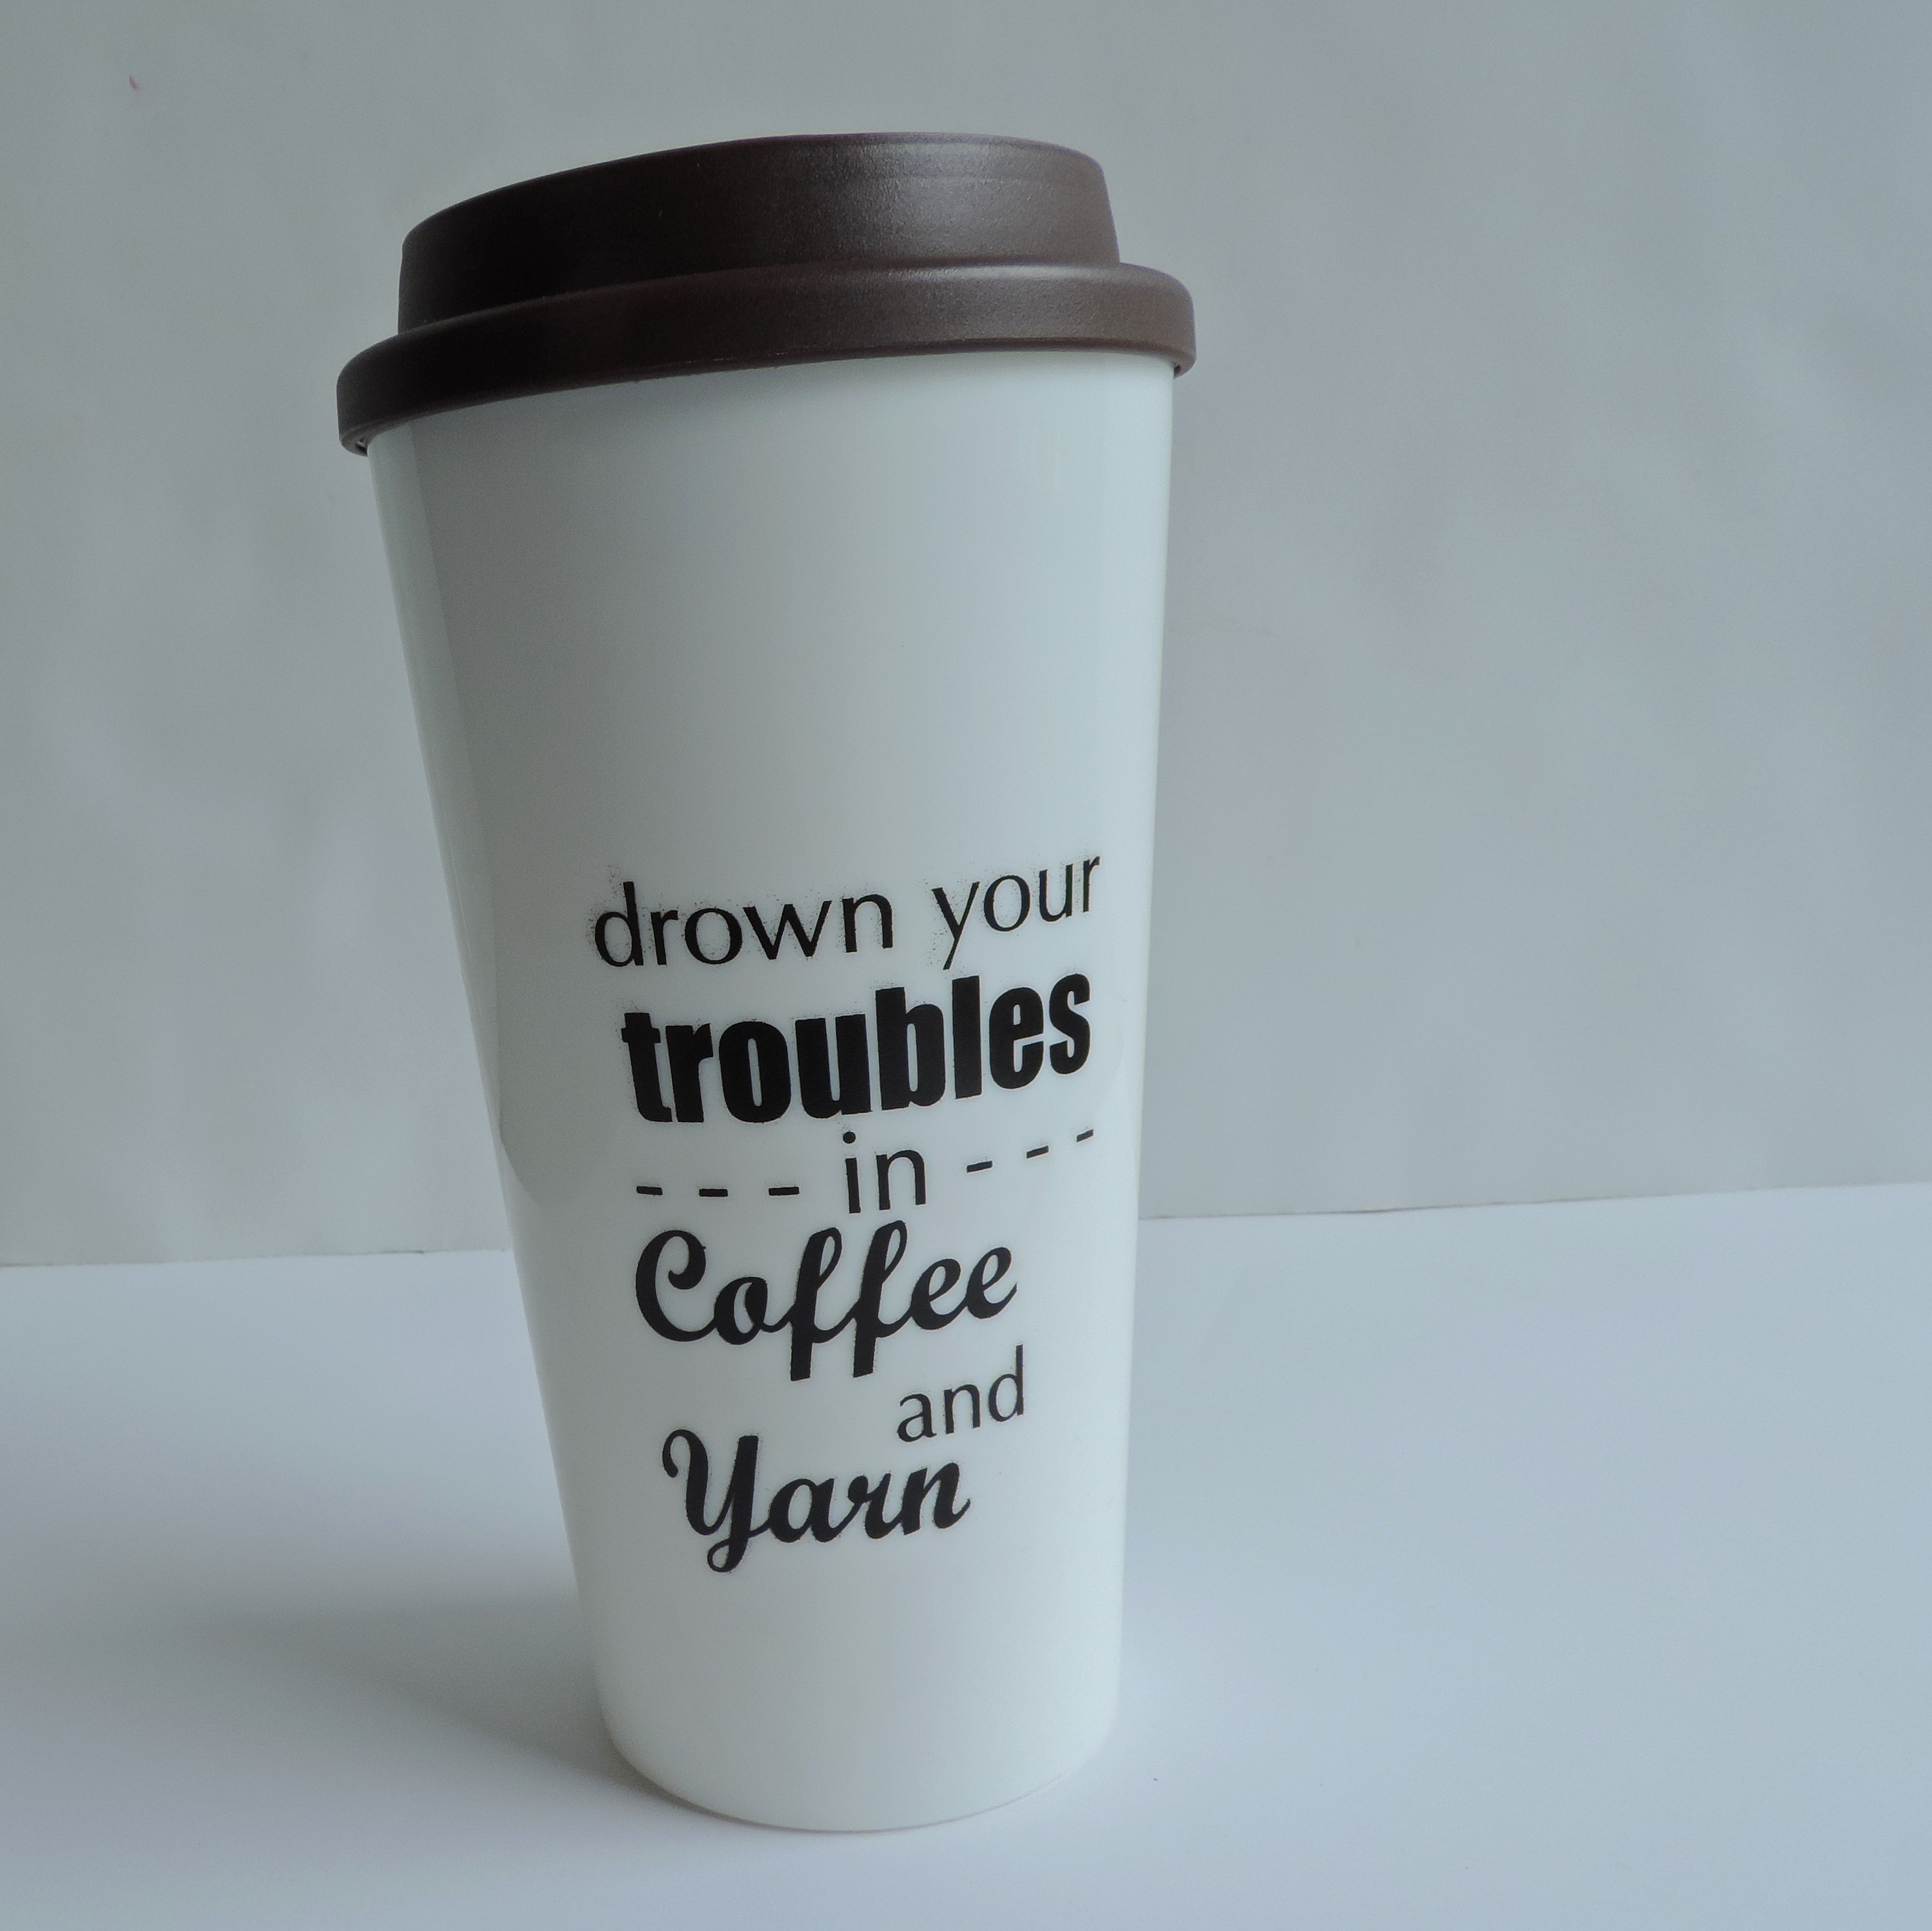 Drown Your Travel Troubles Troubles Drown Travel Your Mug XiTPkZuO